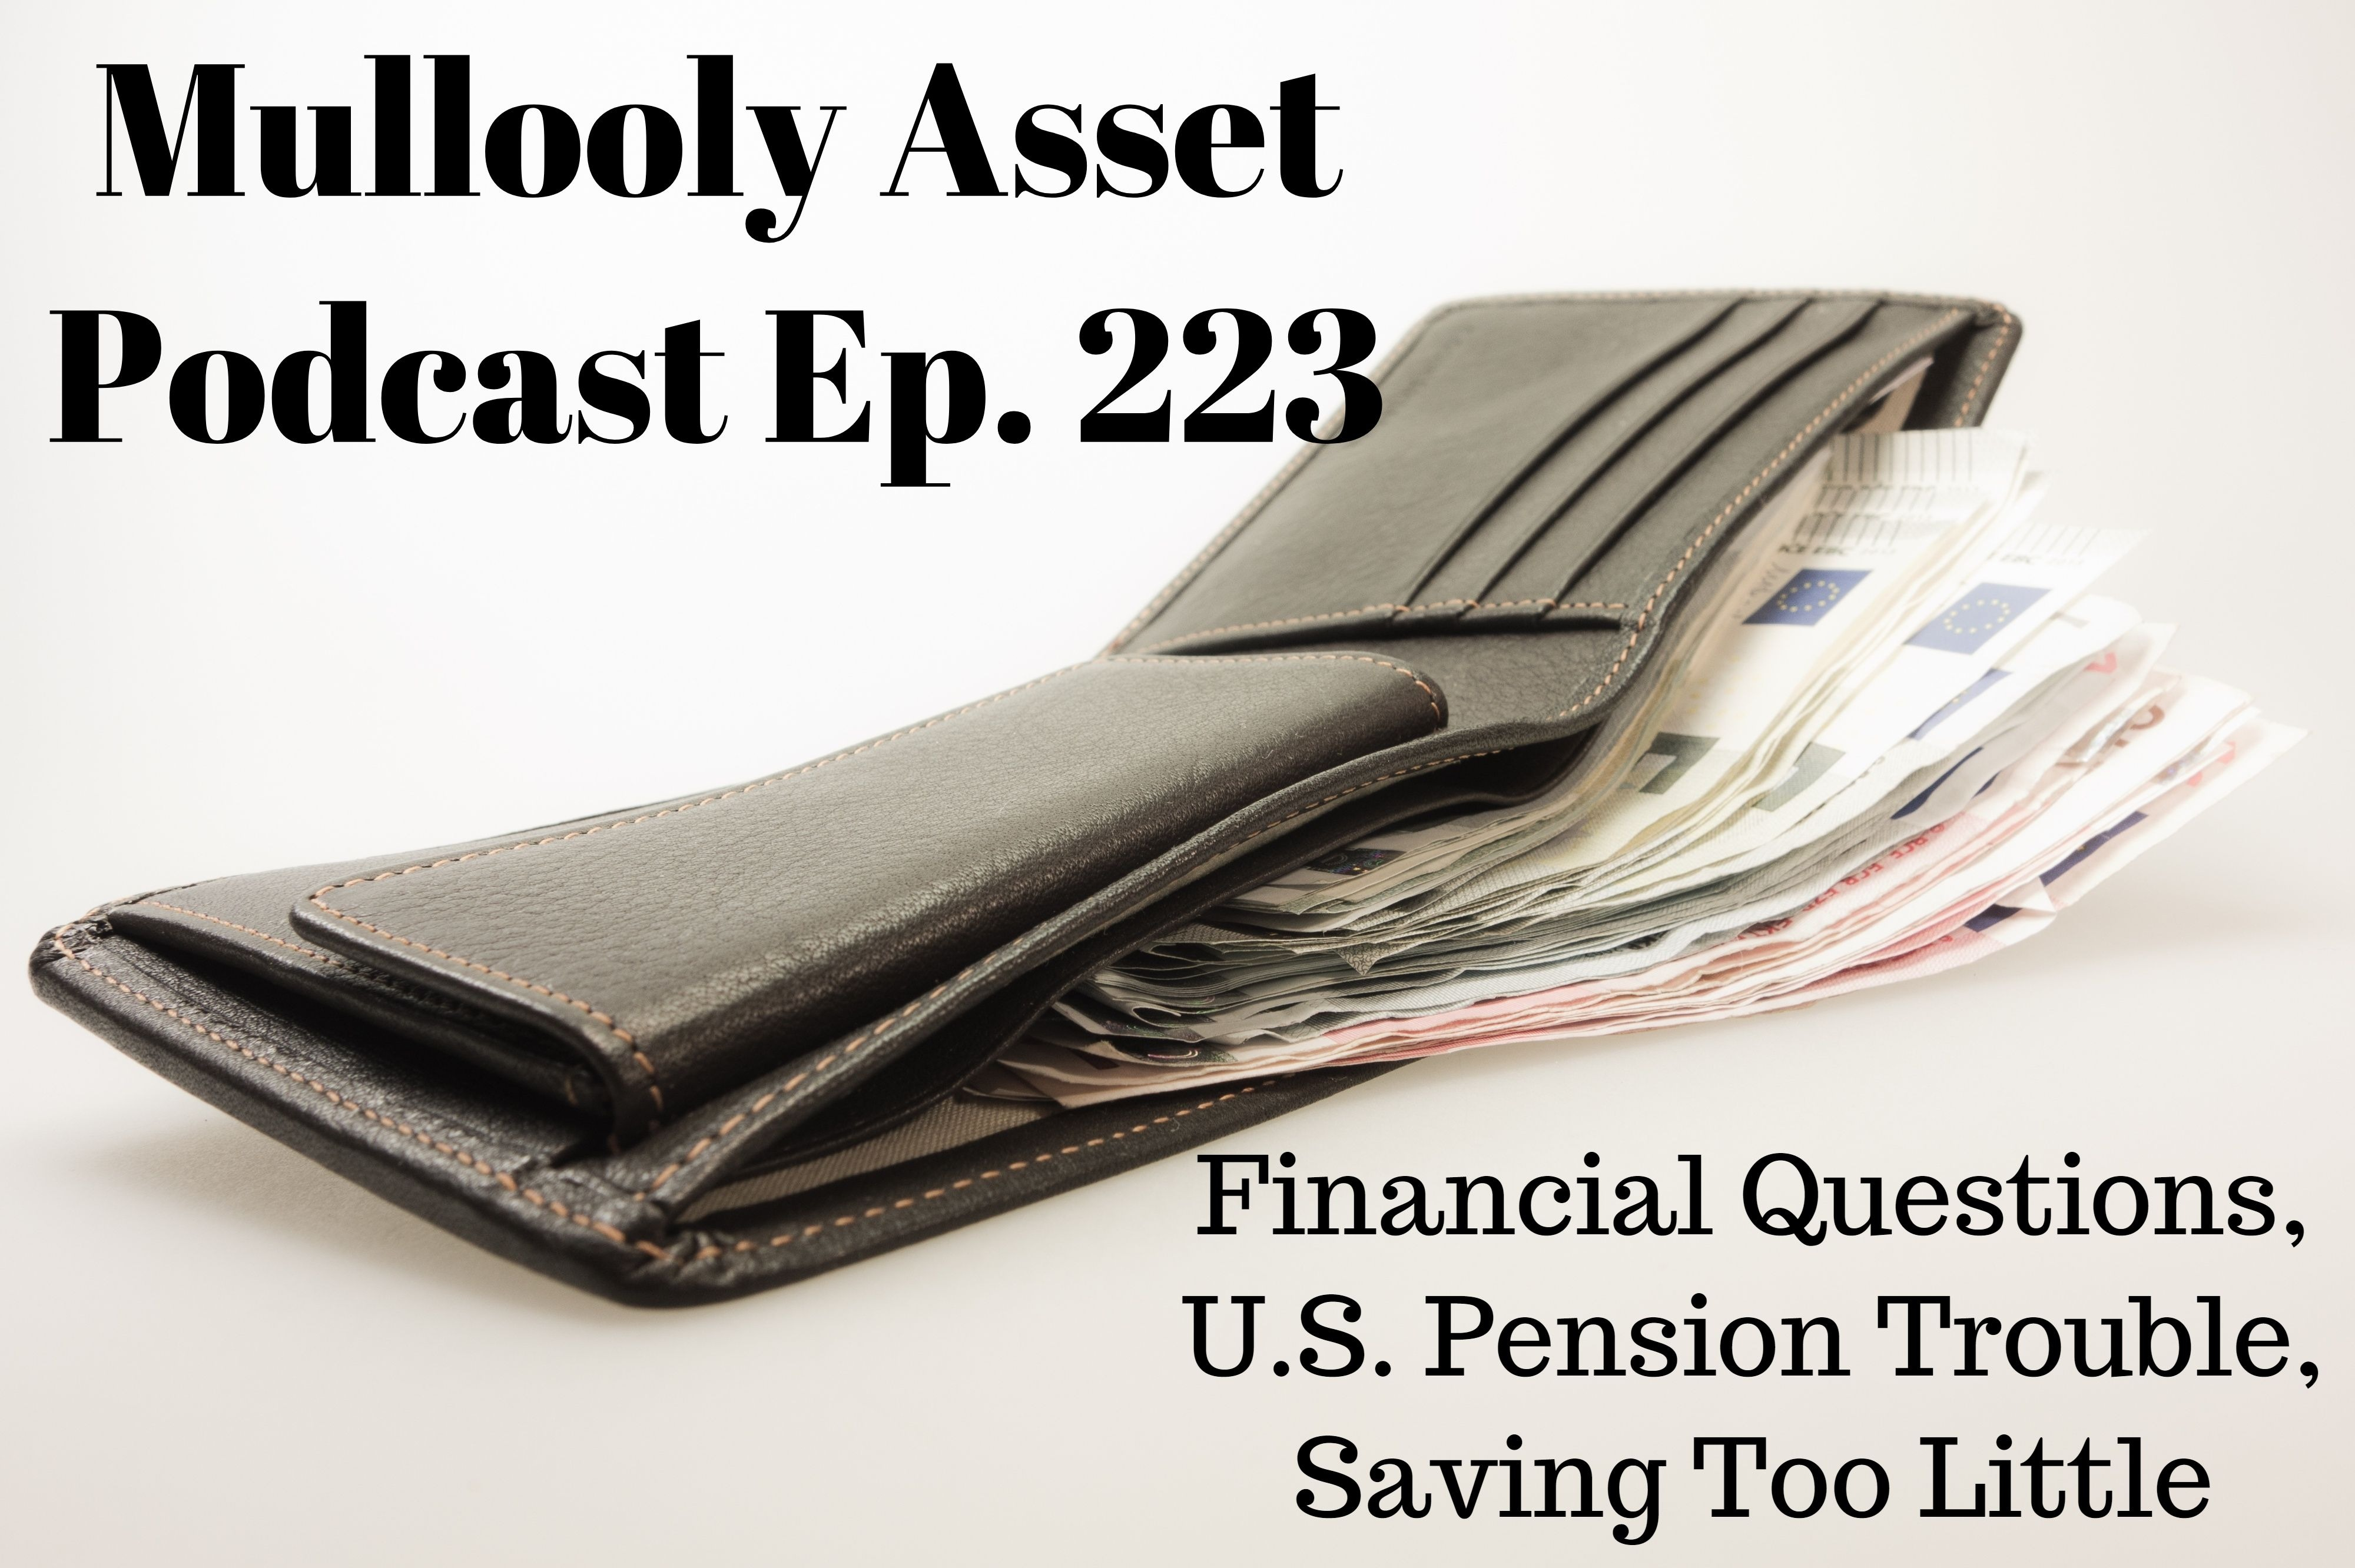 Ep. 223: Financial Questions, U.S. Pension Trouble, Saving Too Little